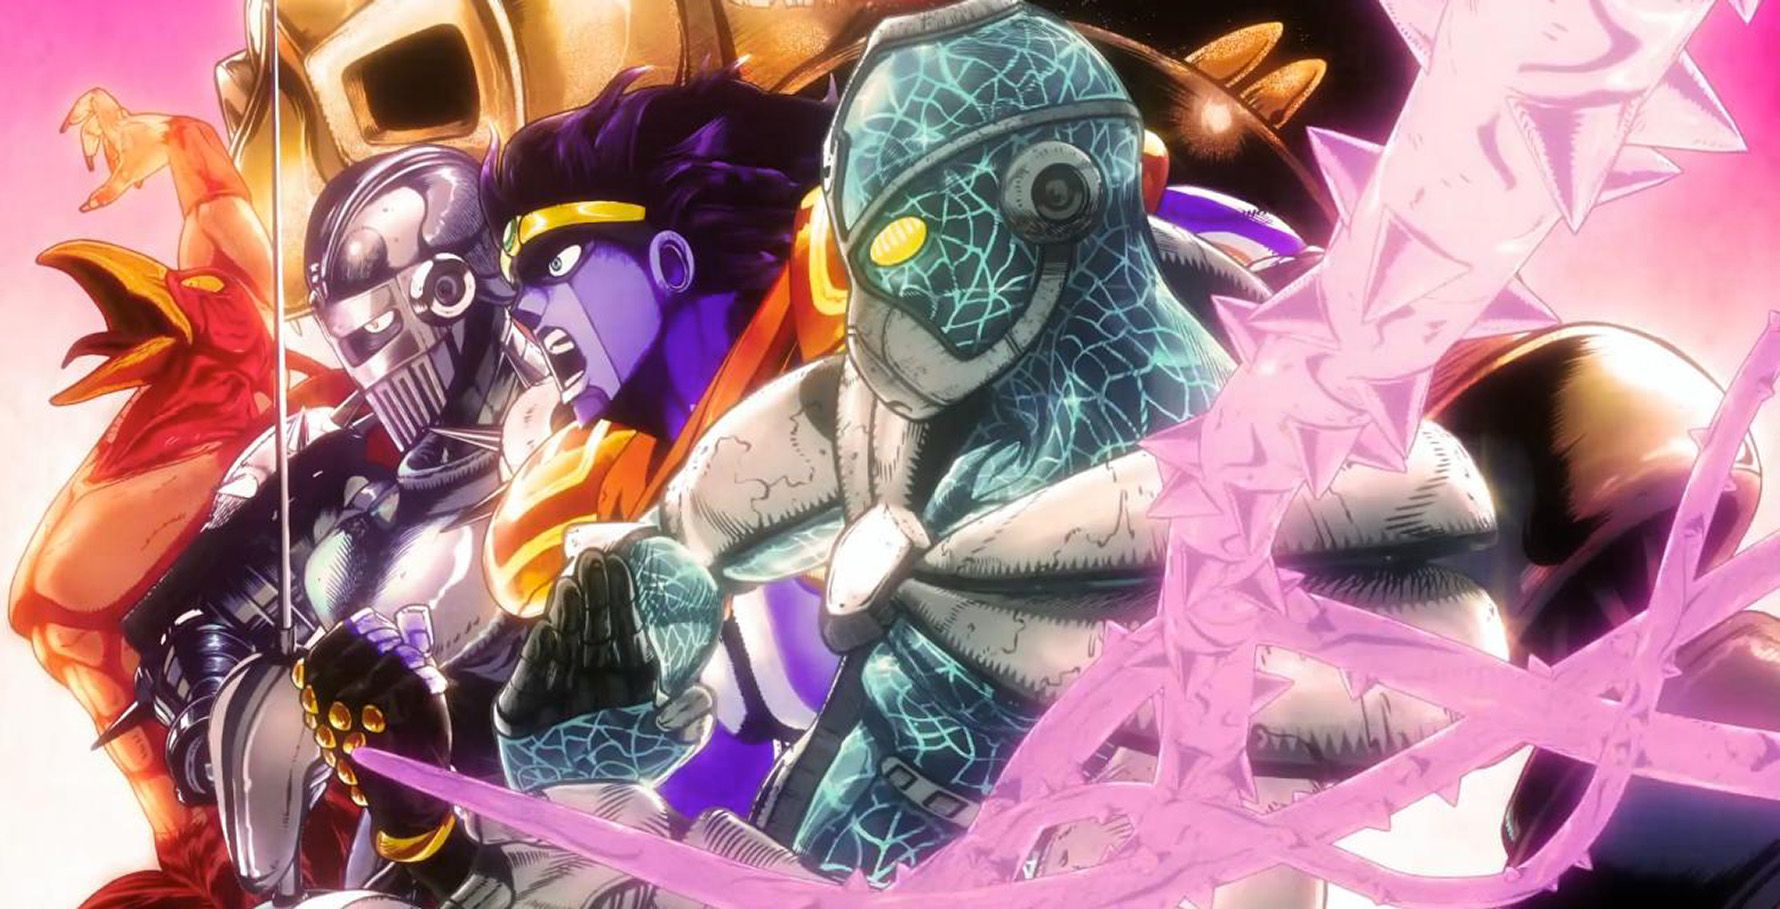 Jojo S Bizarre Adventure The 15 Strongest Stands Ranked Cbr Jojo's bizarre adventure stand crazy diamond is one unique character. strongest stands ranked